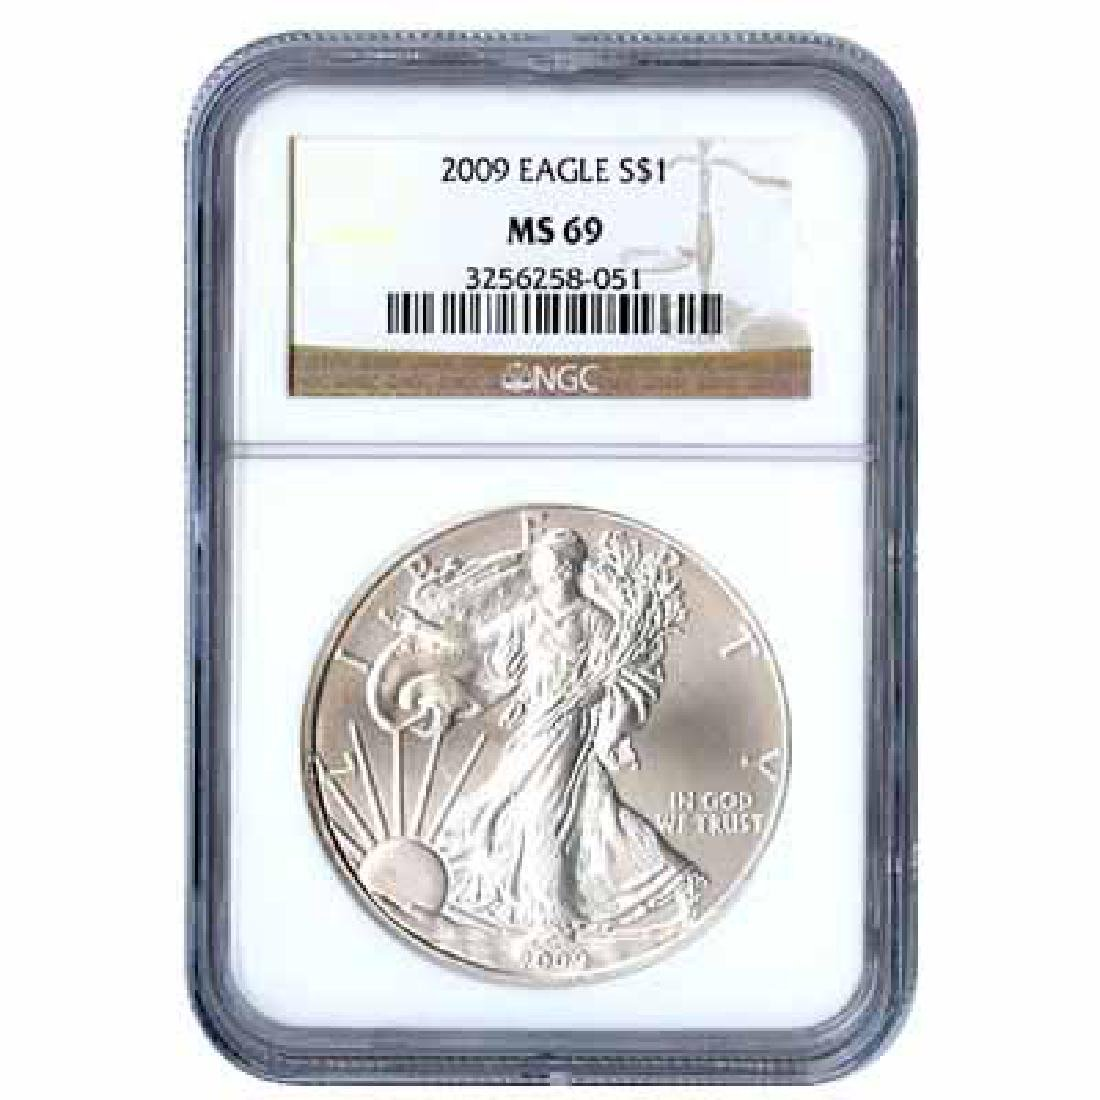 Certified Uncirculated Silver Eagle 2009 MS69